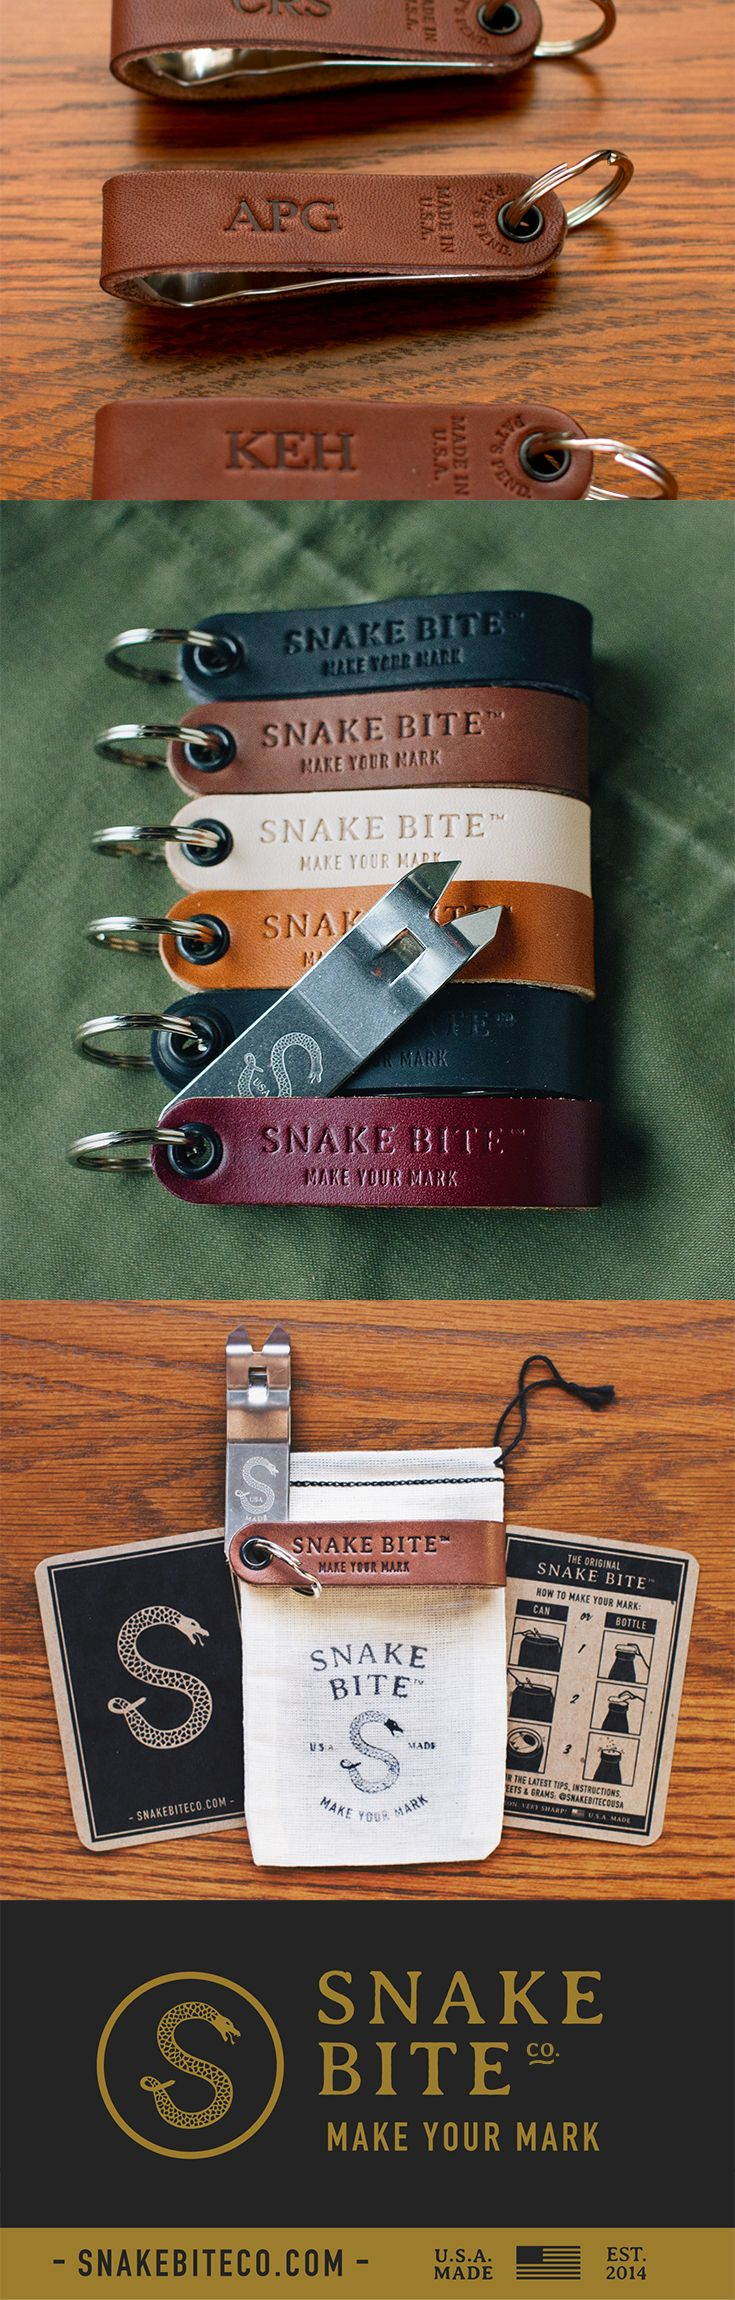 Custom monogrammed Snake Bite Bottle Openers are the perfect Groomsmen's Gift idea. These are 100% made in the USA and come in a variety of leather colors. Click on the image to learn more about all the custom options available for your big day!